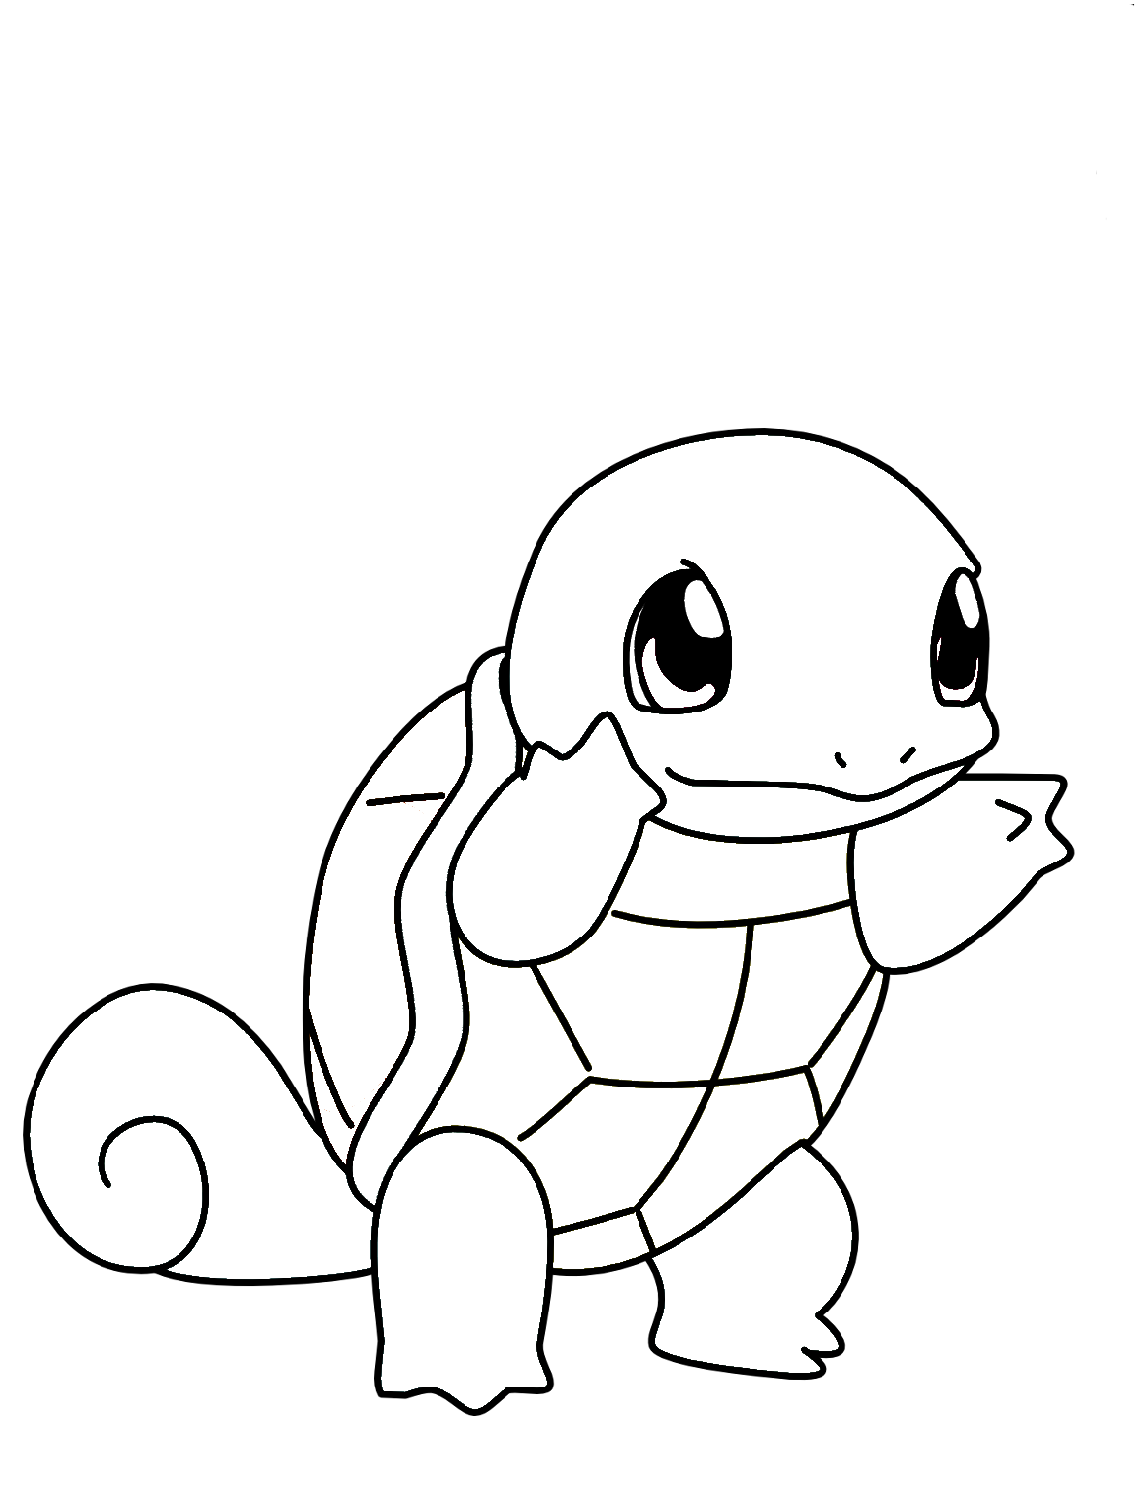 Squirtle Coloring Pages Pokemon | Educative Printable